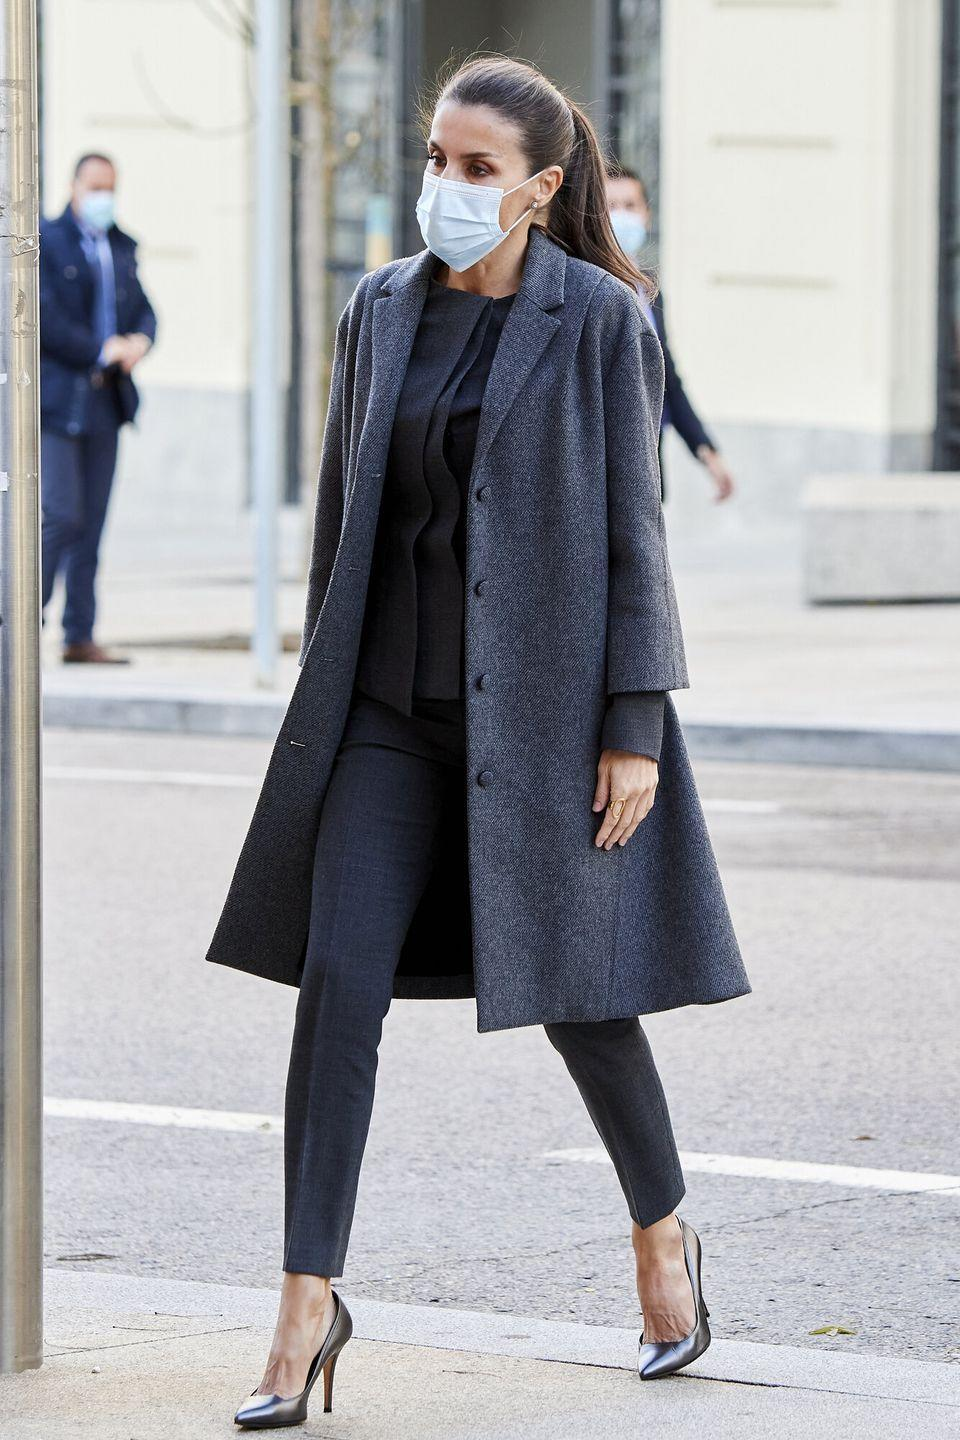 <p><strong>4 December </strong>Queen Letitia of Spain looked elegant in head-to-toe charcoal grey for an official engagement in Madrid. </p>